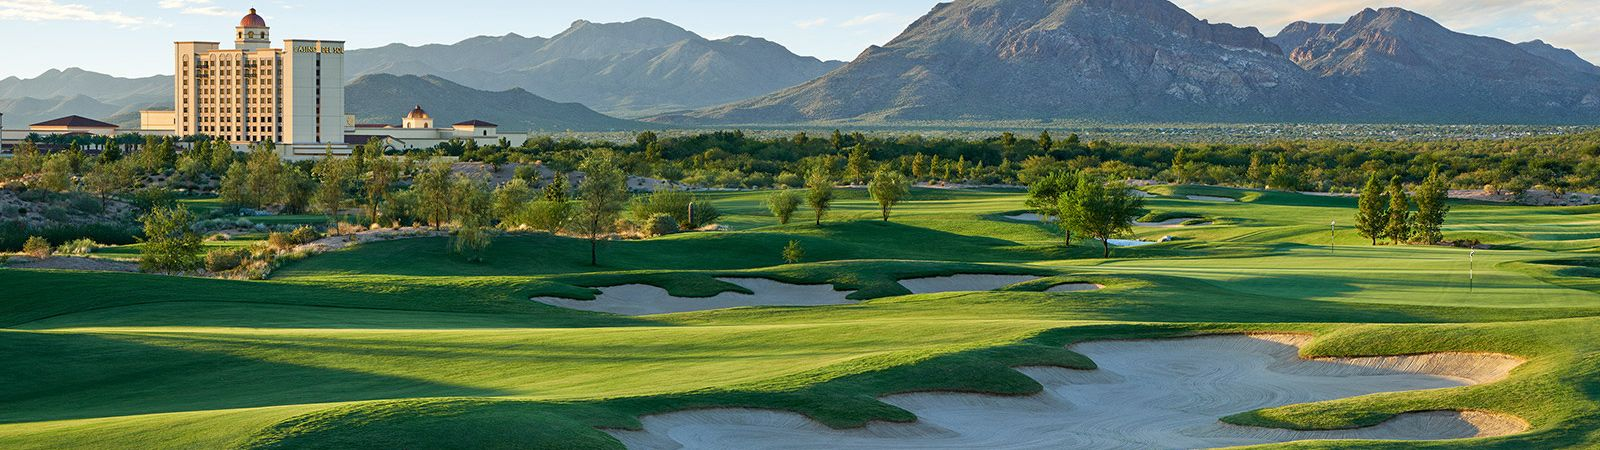 Casino del sol golf course tee times need for speed 2 se free online game